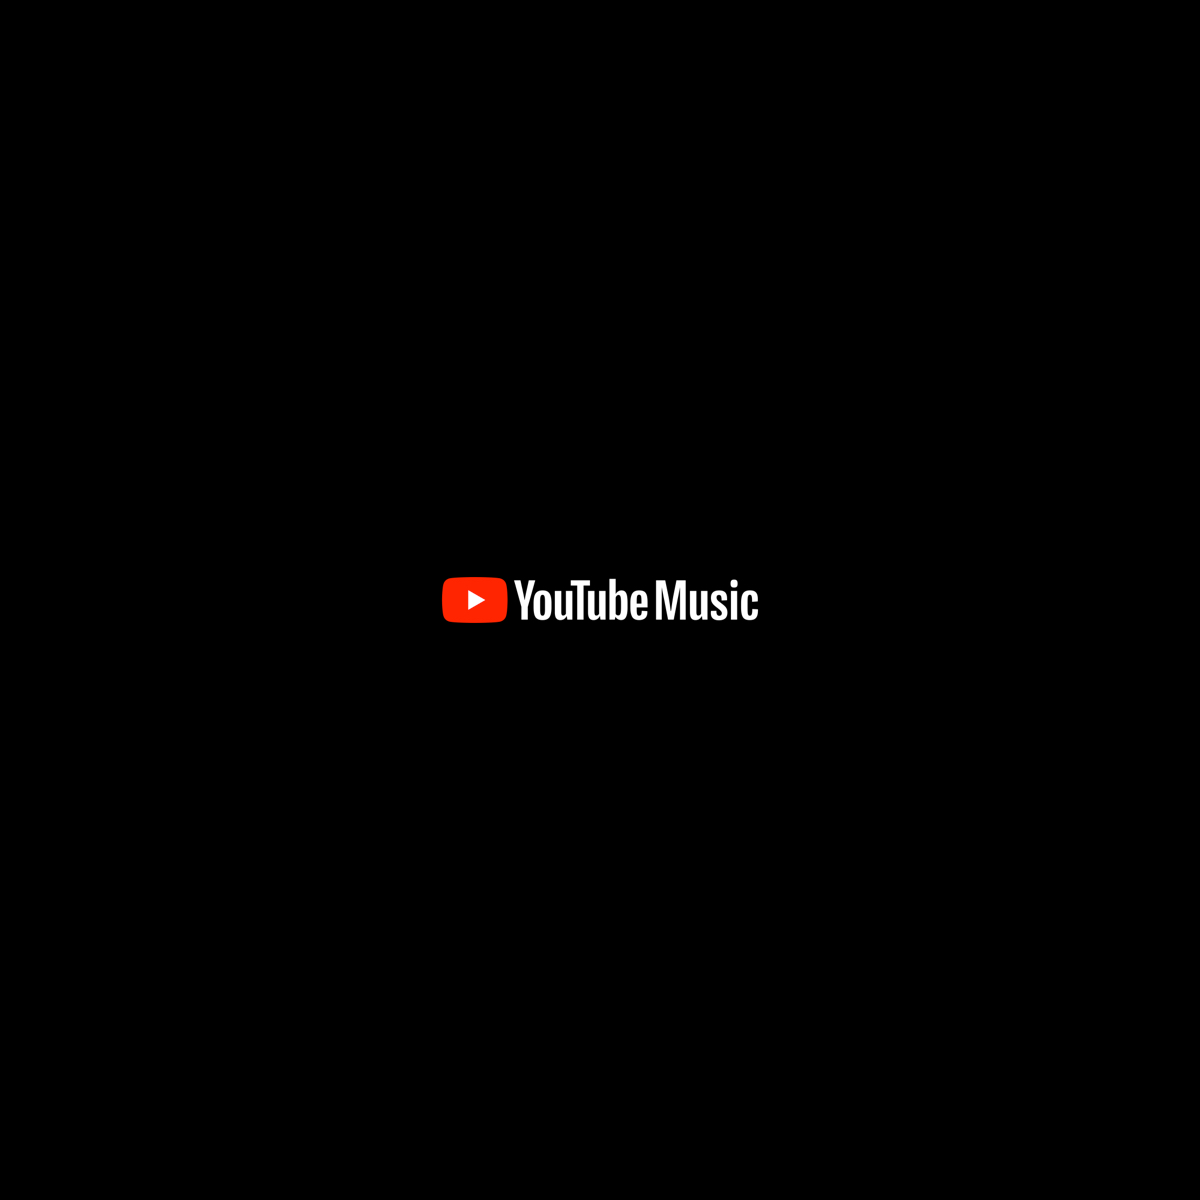 Youtube music trial